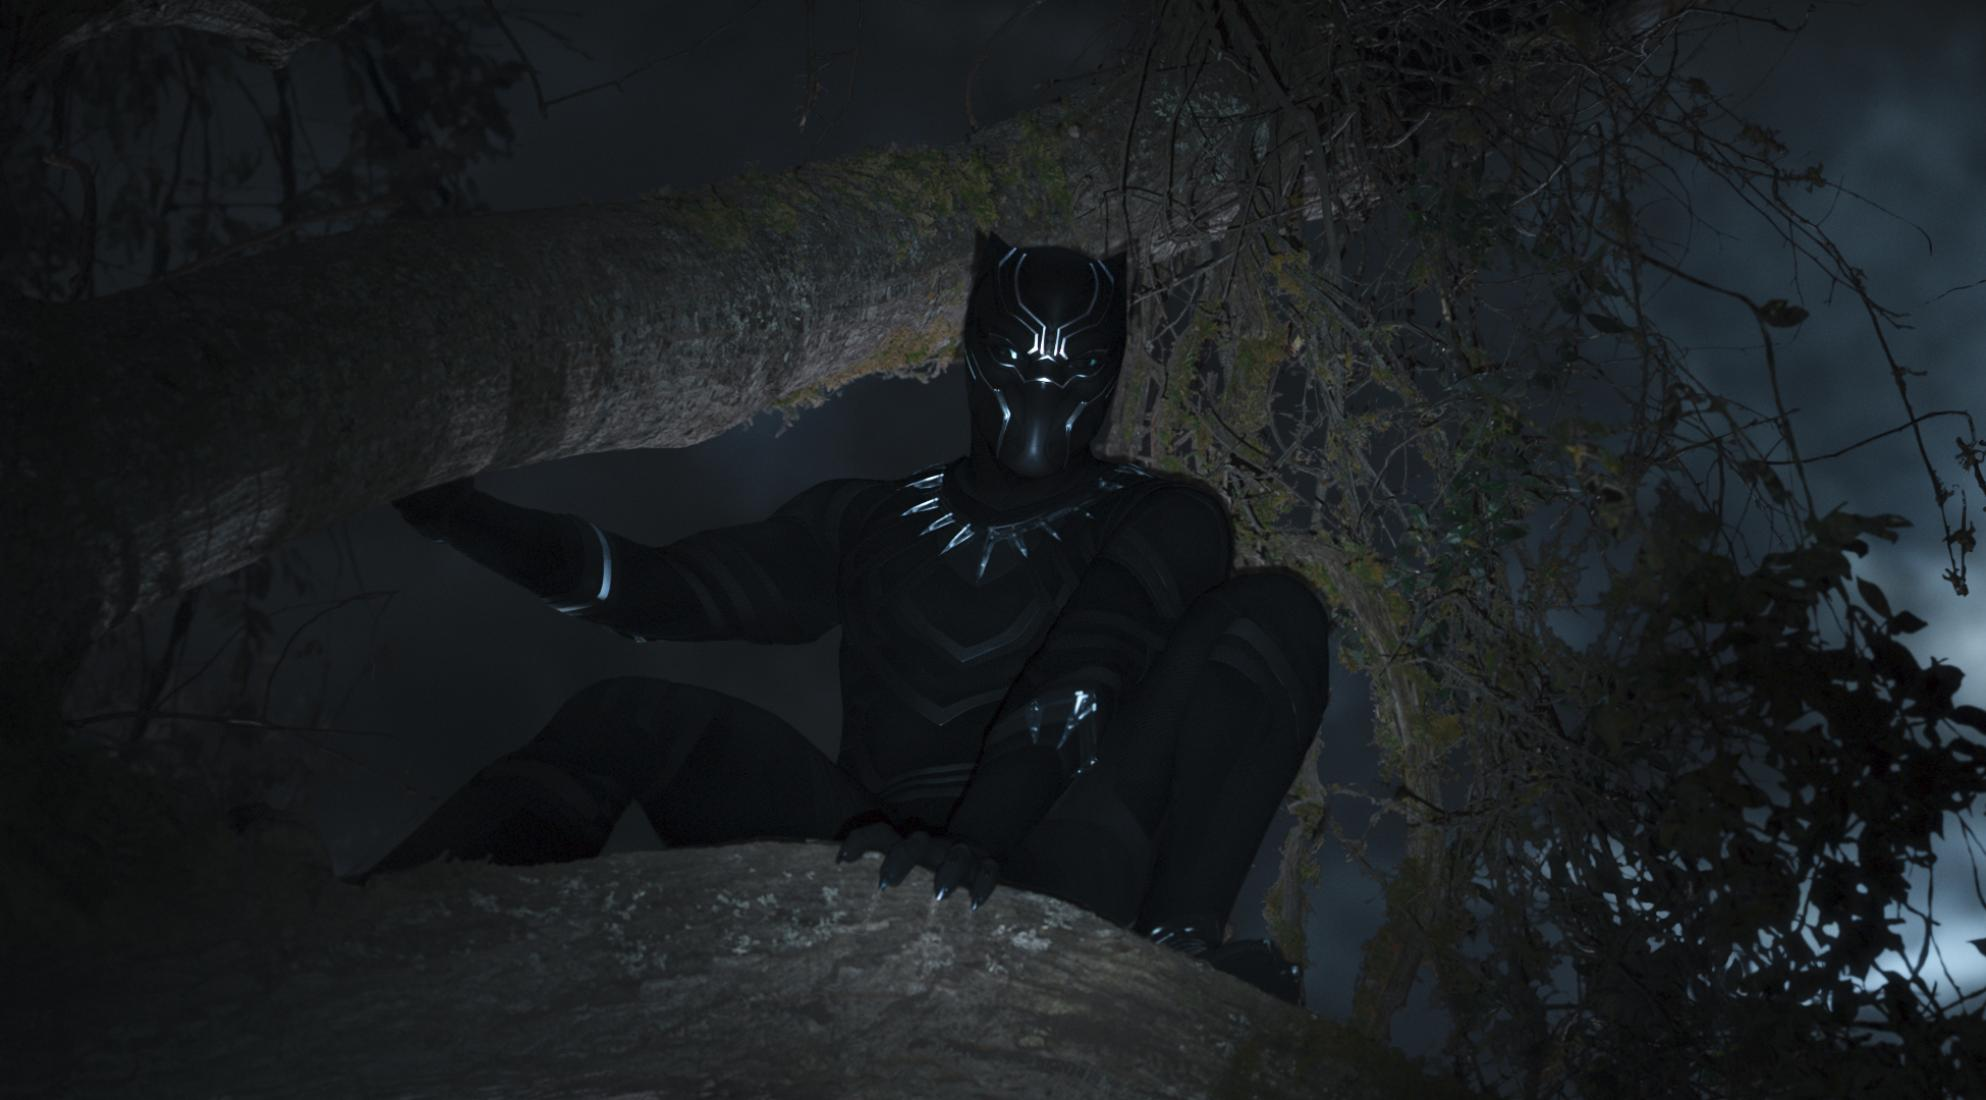 'Black Panther' the film